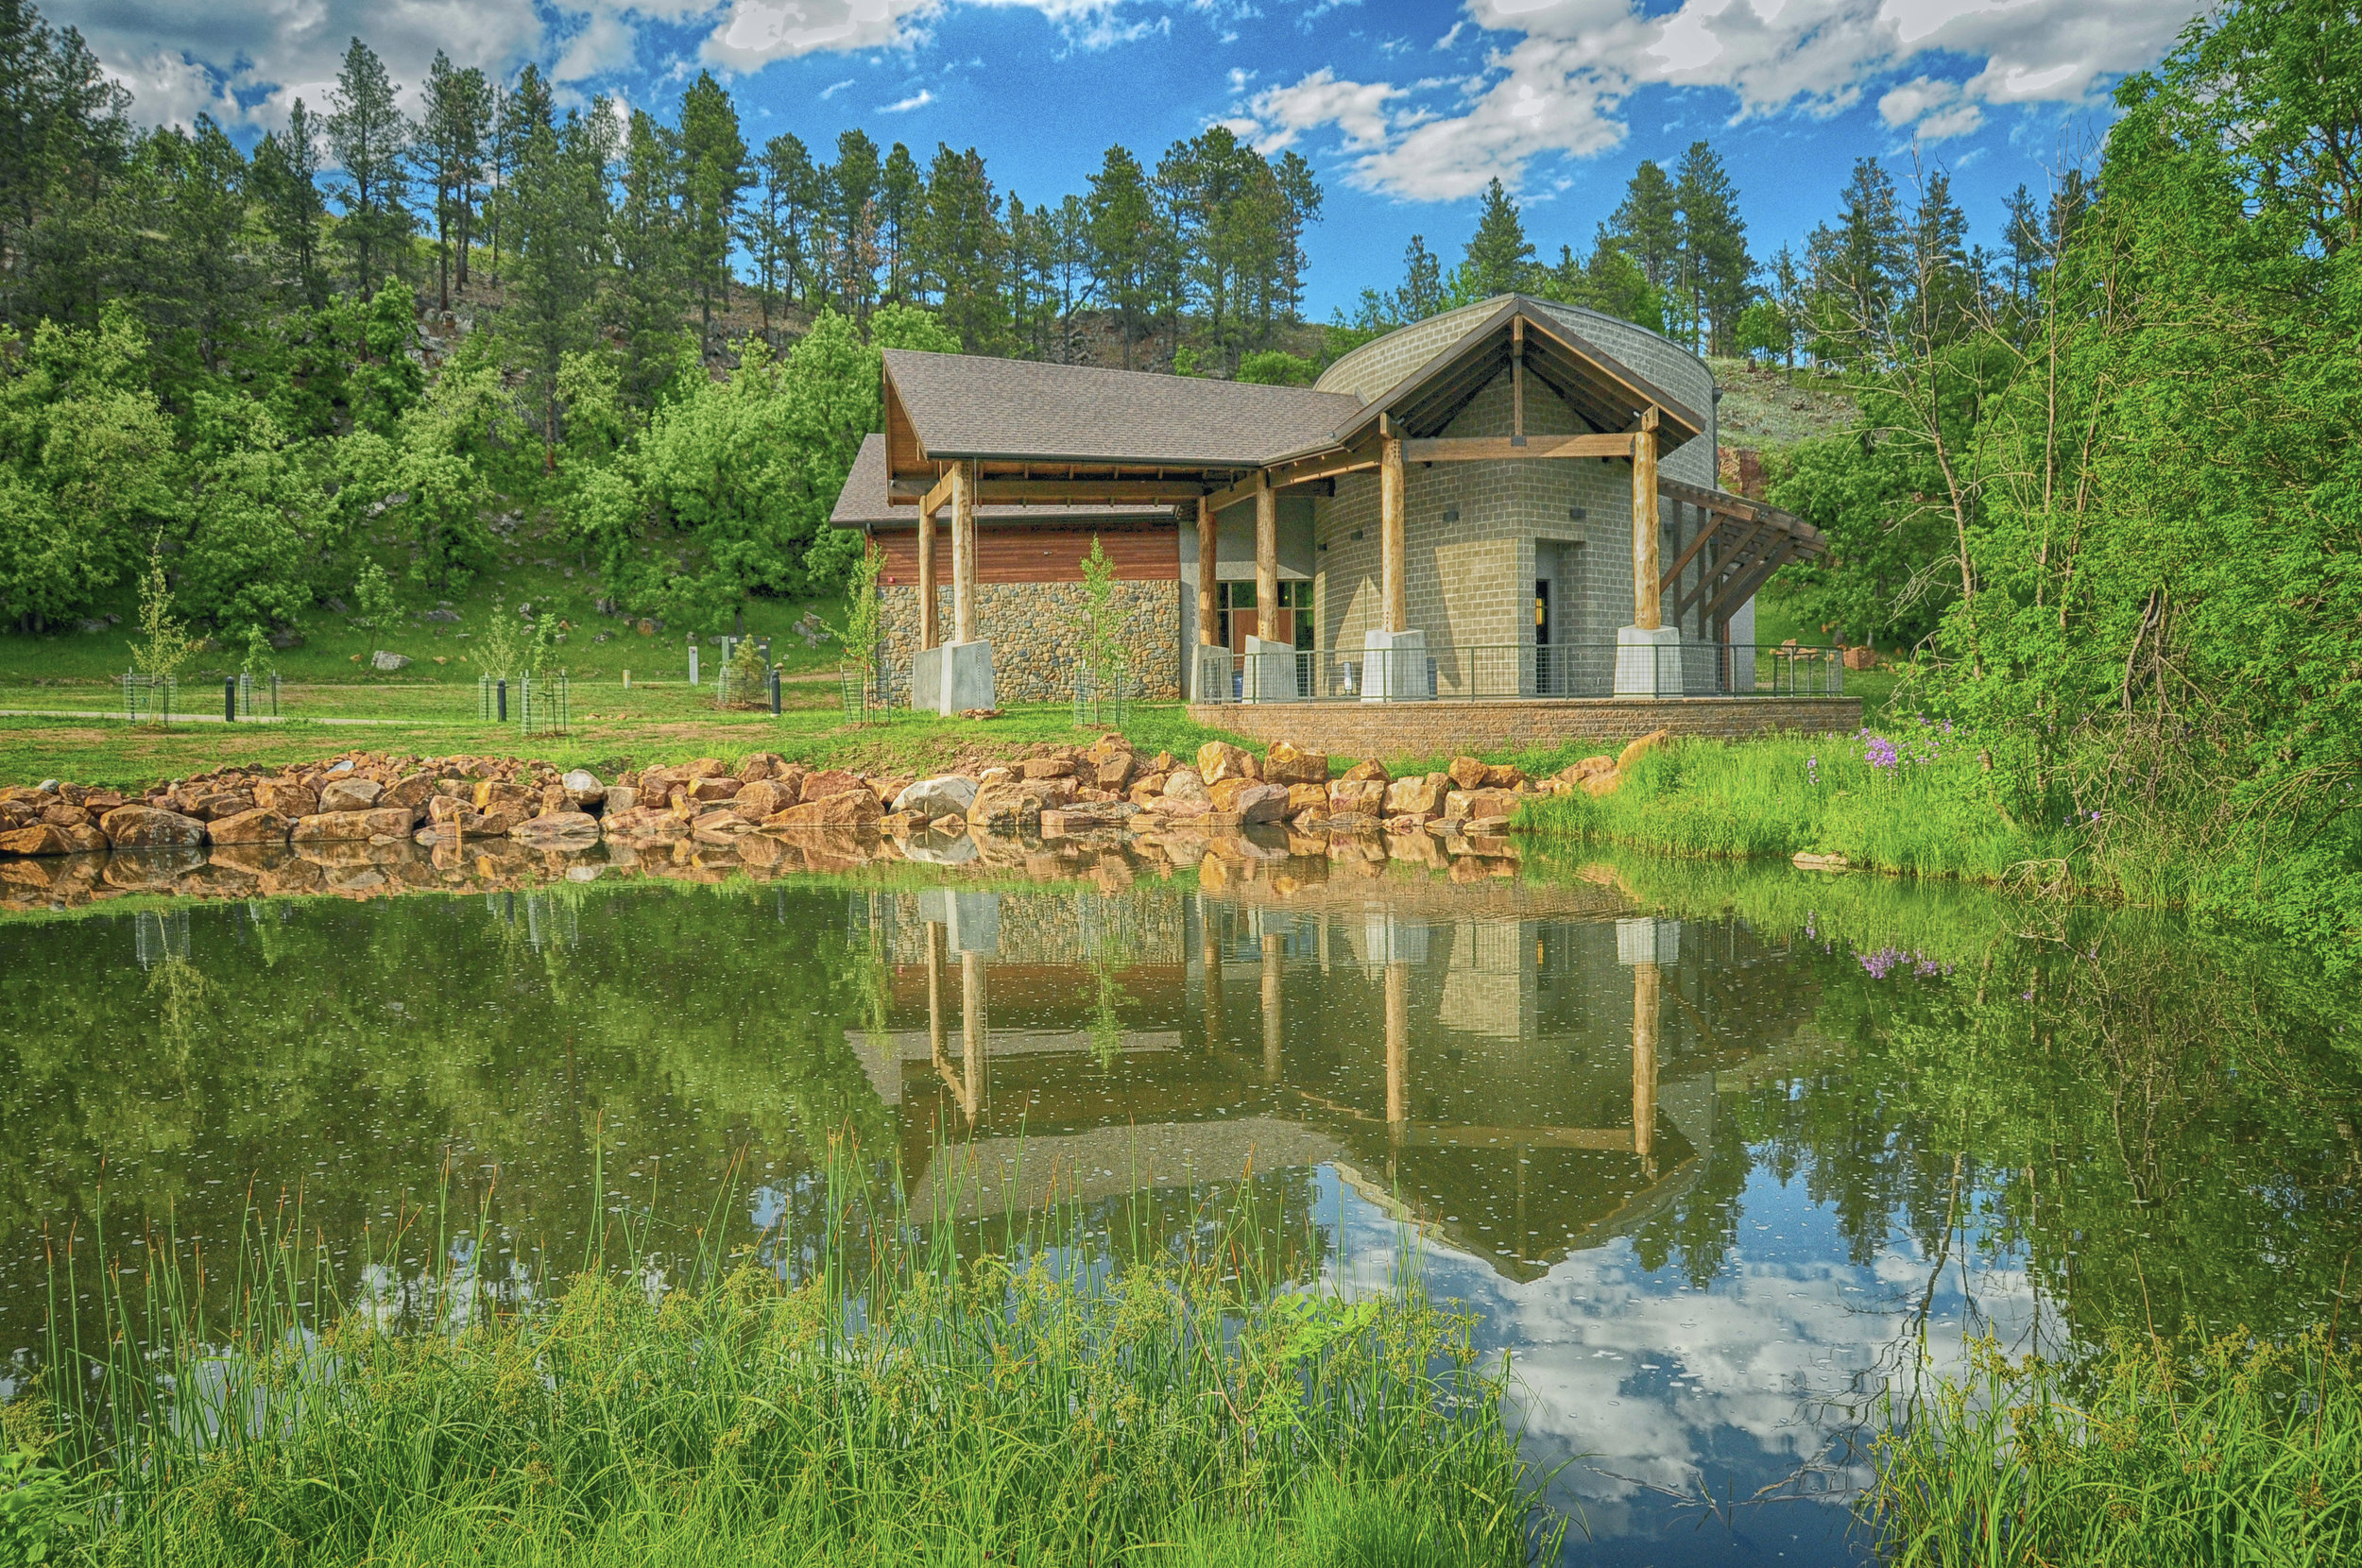 CUSTER STATE PARK VISITOR CENTER - CUSTER.SD